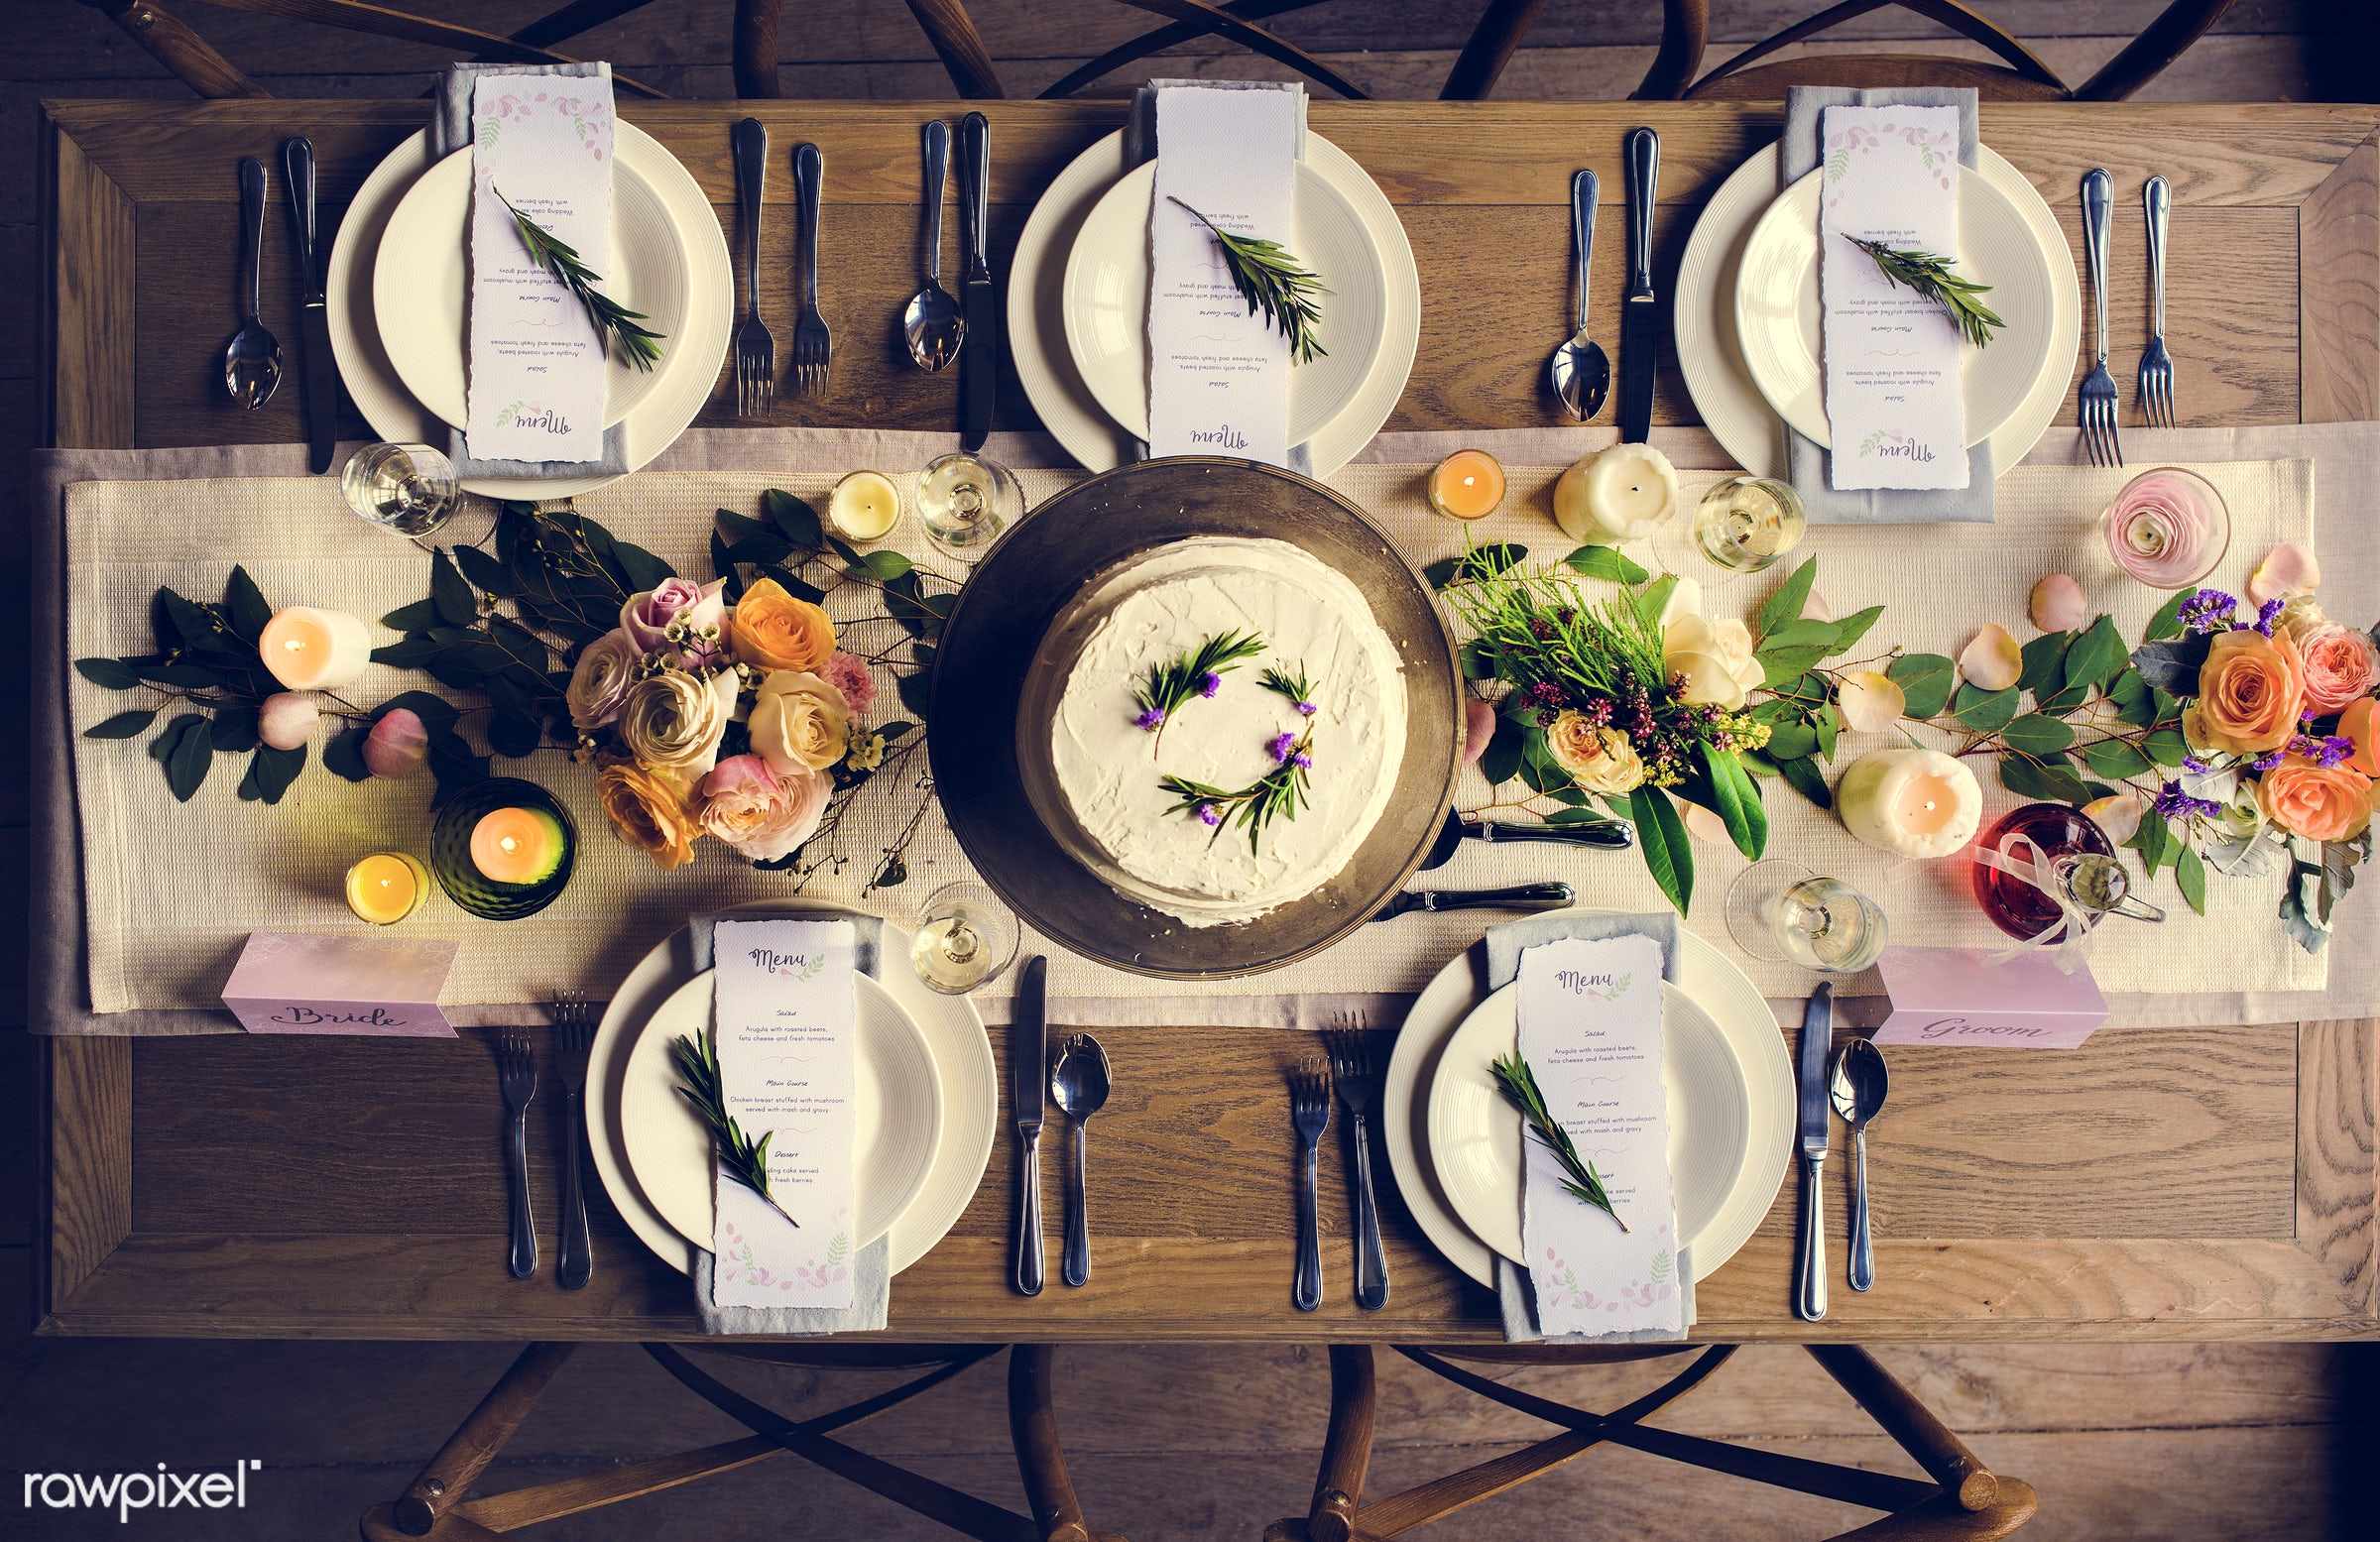 dish, nobody, fancy, catering, set, cutlery, spoon, silverware, restaurant, party, setting, dining table, tablecloth, event...